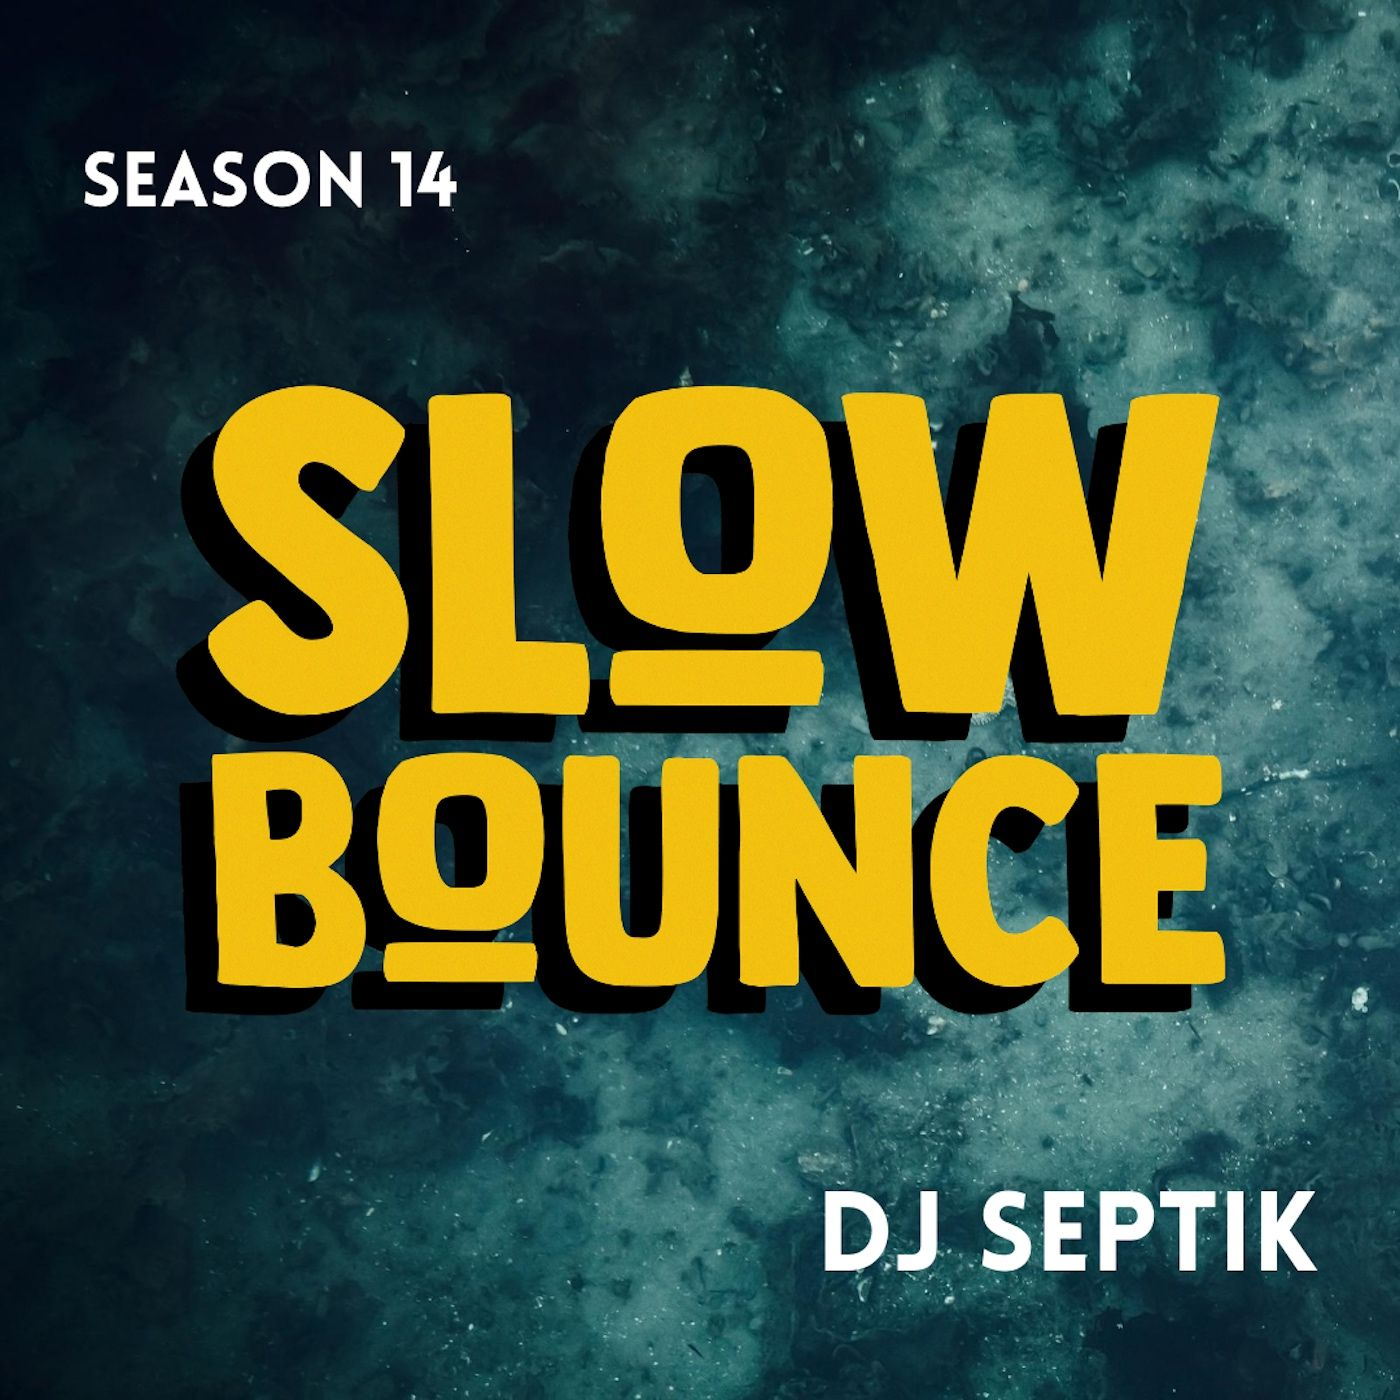 Bigupradio.com SLOWBOUNCE - Dancehall with Dj Septik